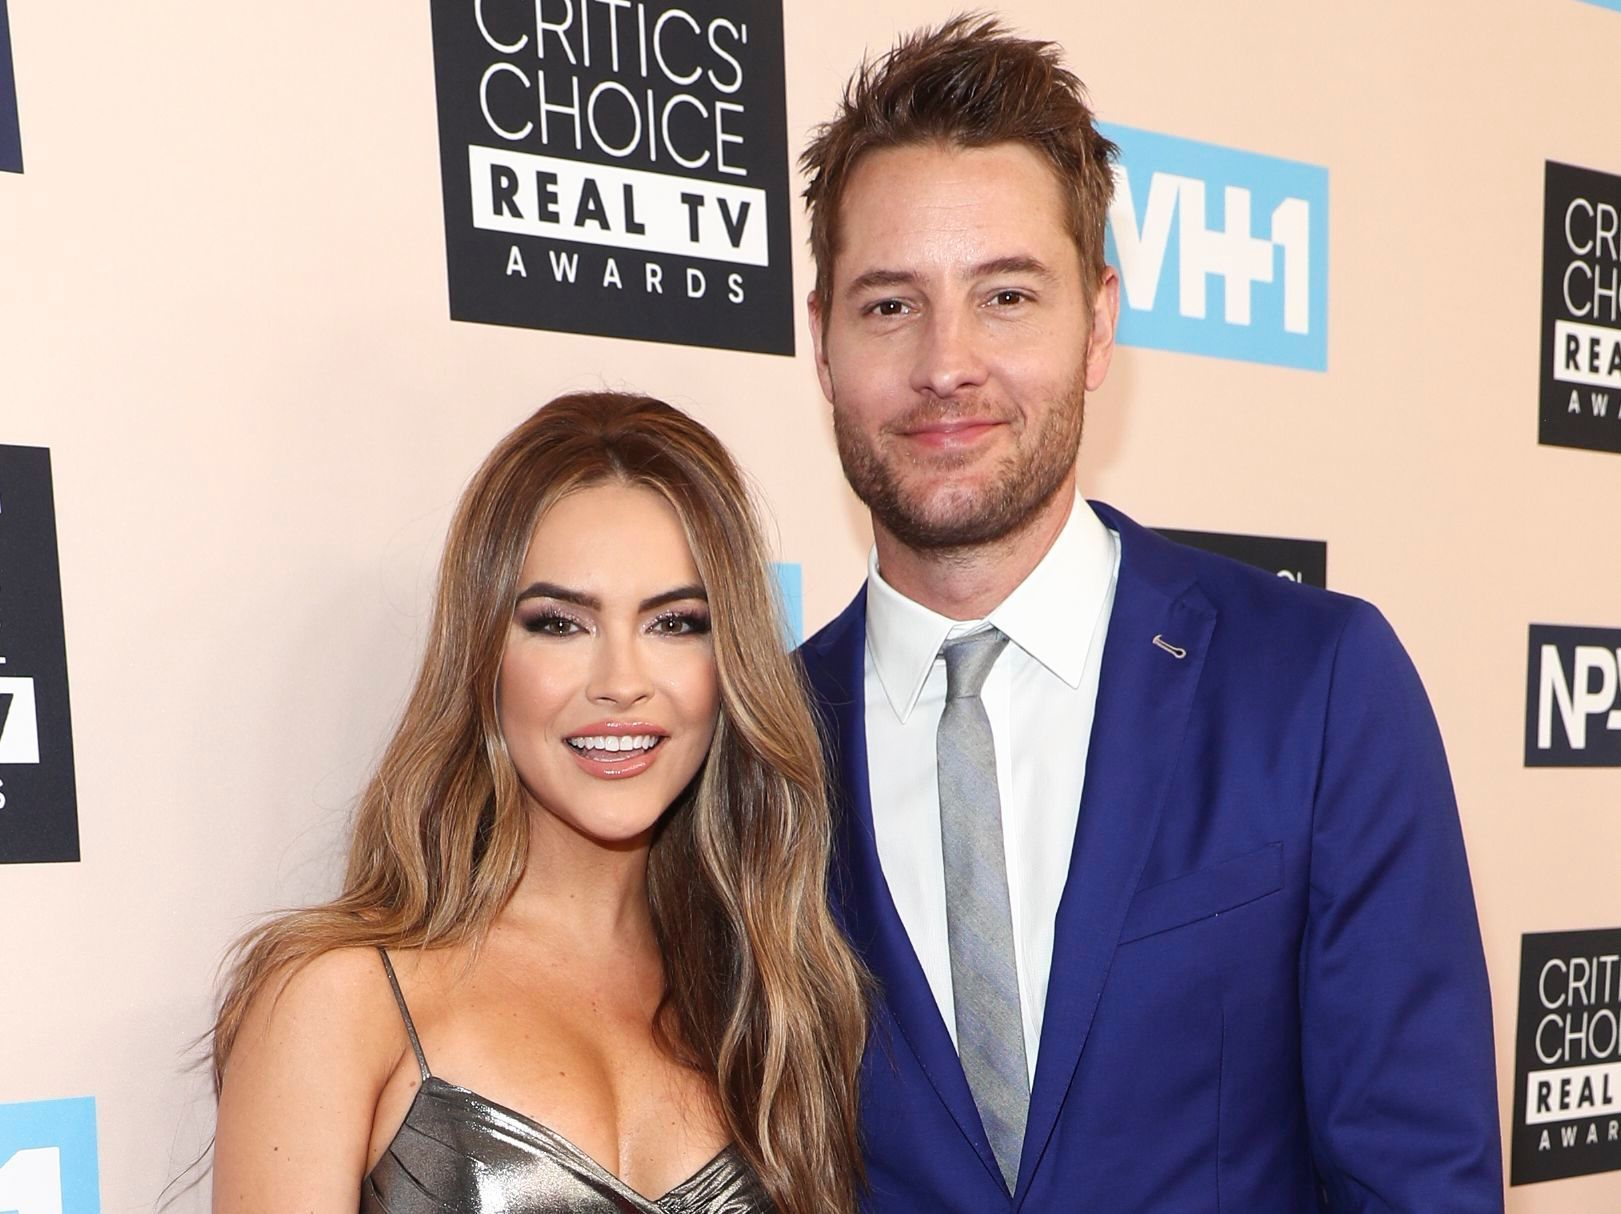 Justin Hartley Texted Chrishell Stause About Divorce Filing, She Claims